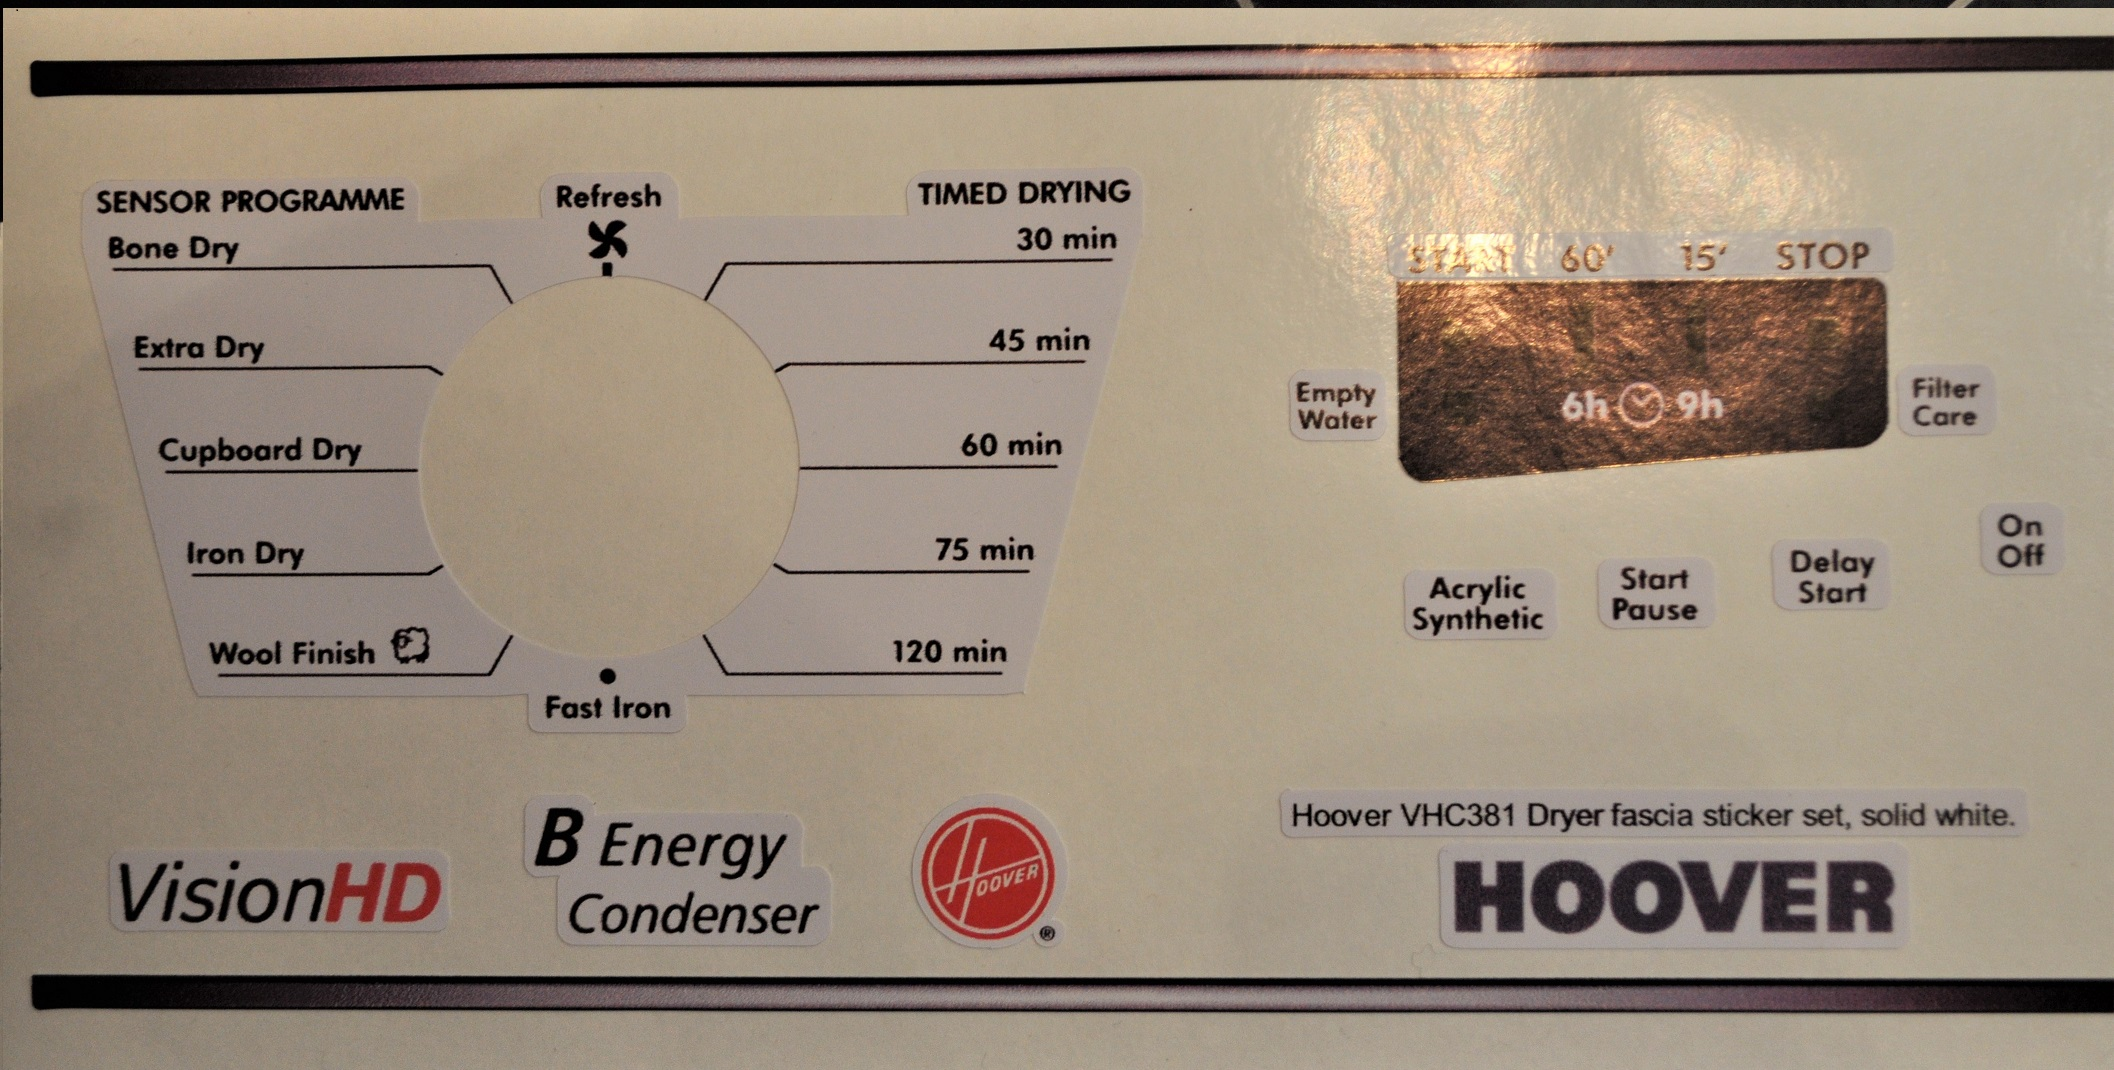 Hoover VHC381 Dryer fascia sticker set.